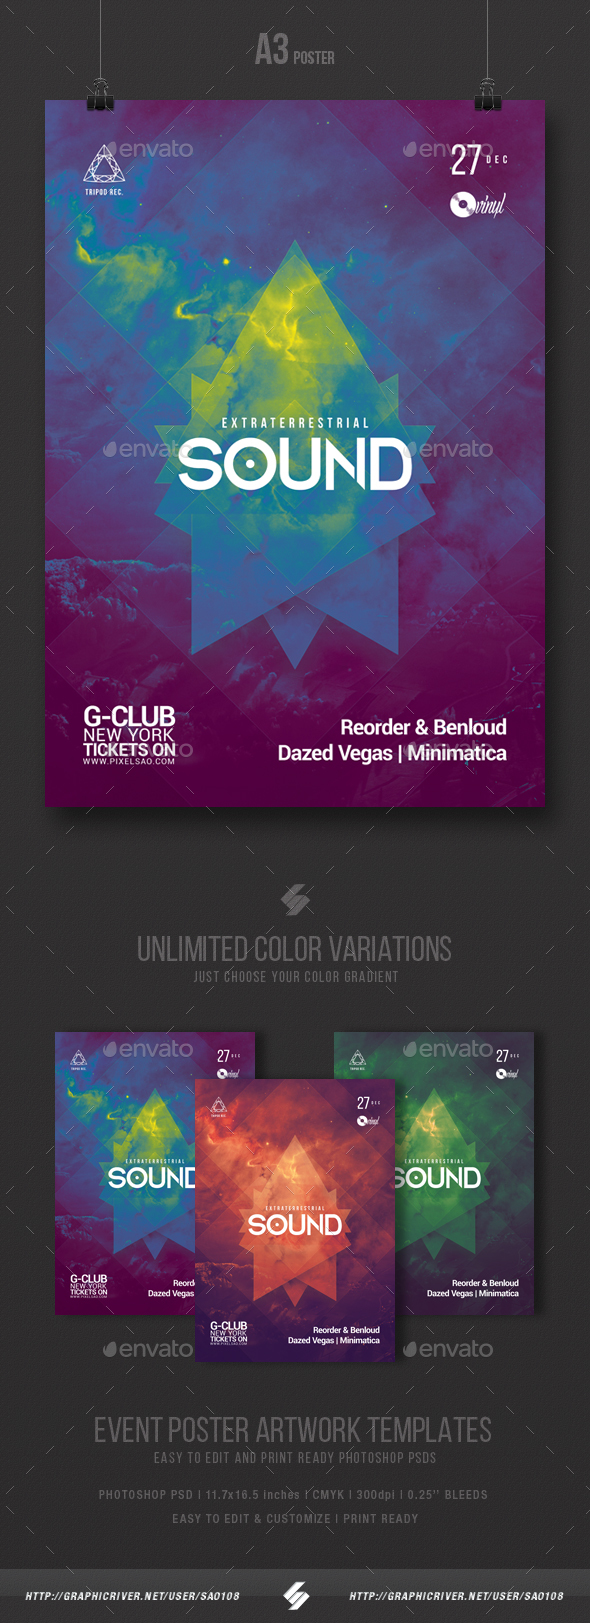 Extraterrestrial Sound - Progressive Party Flyer Template A3 - Clubs & Parties Events